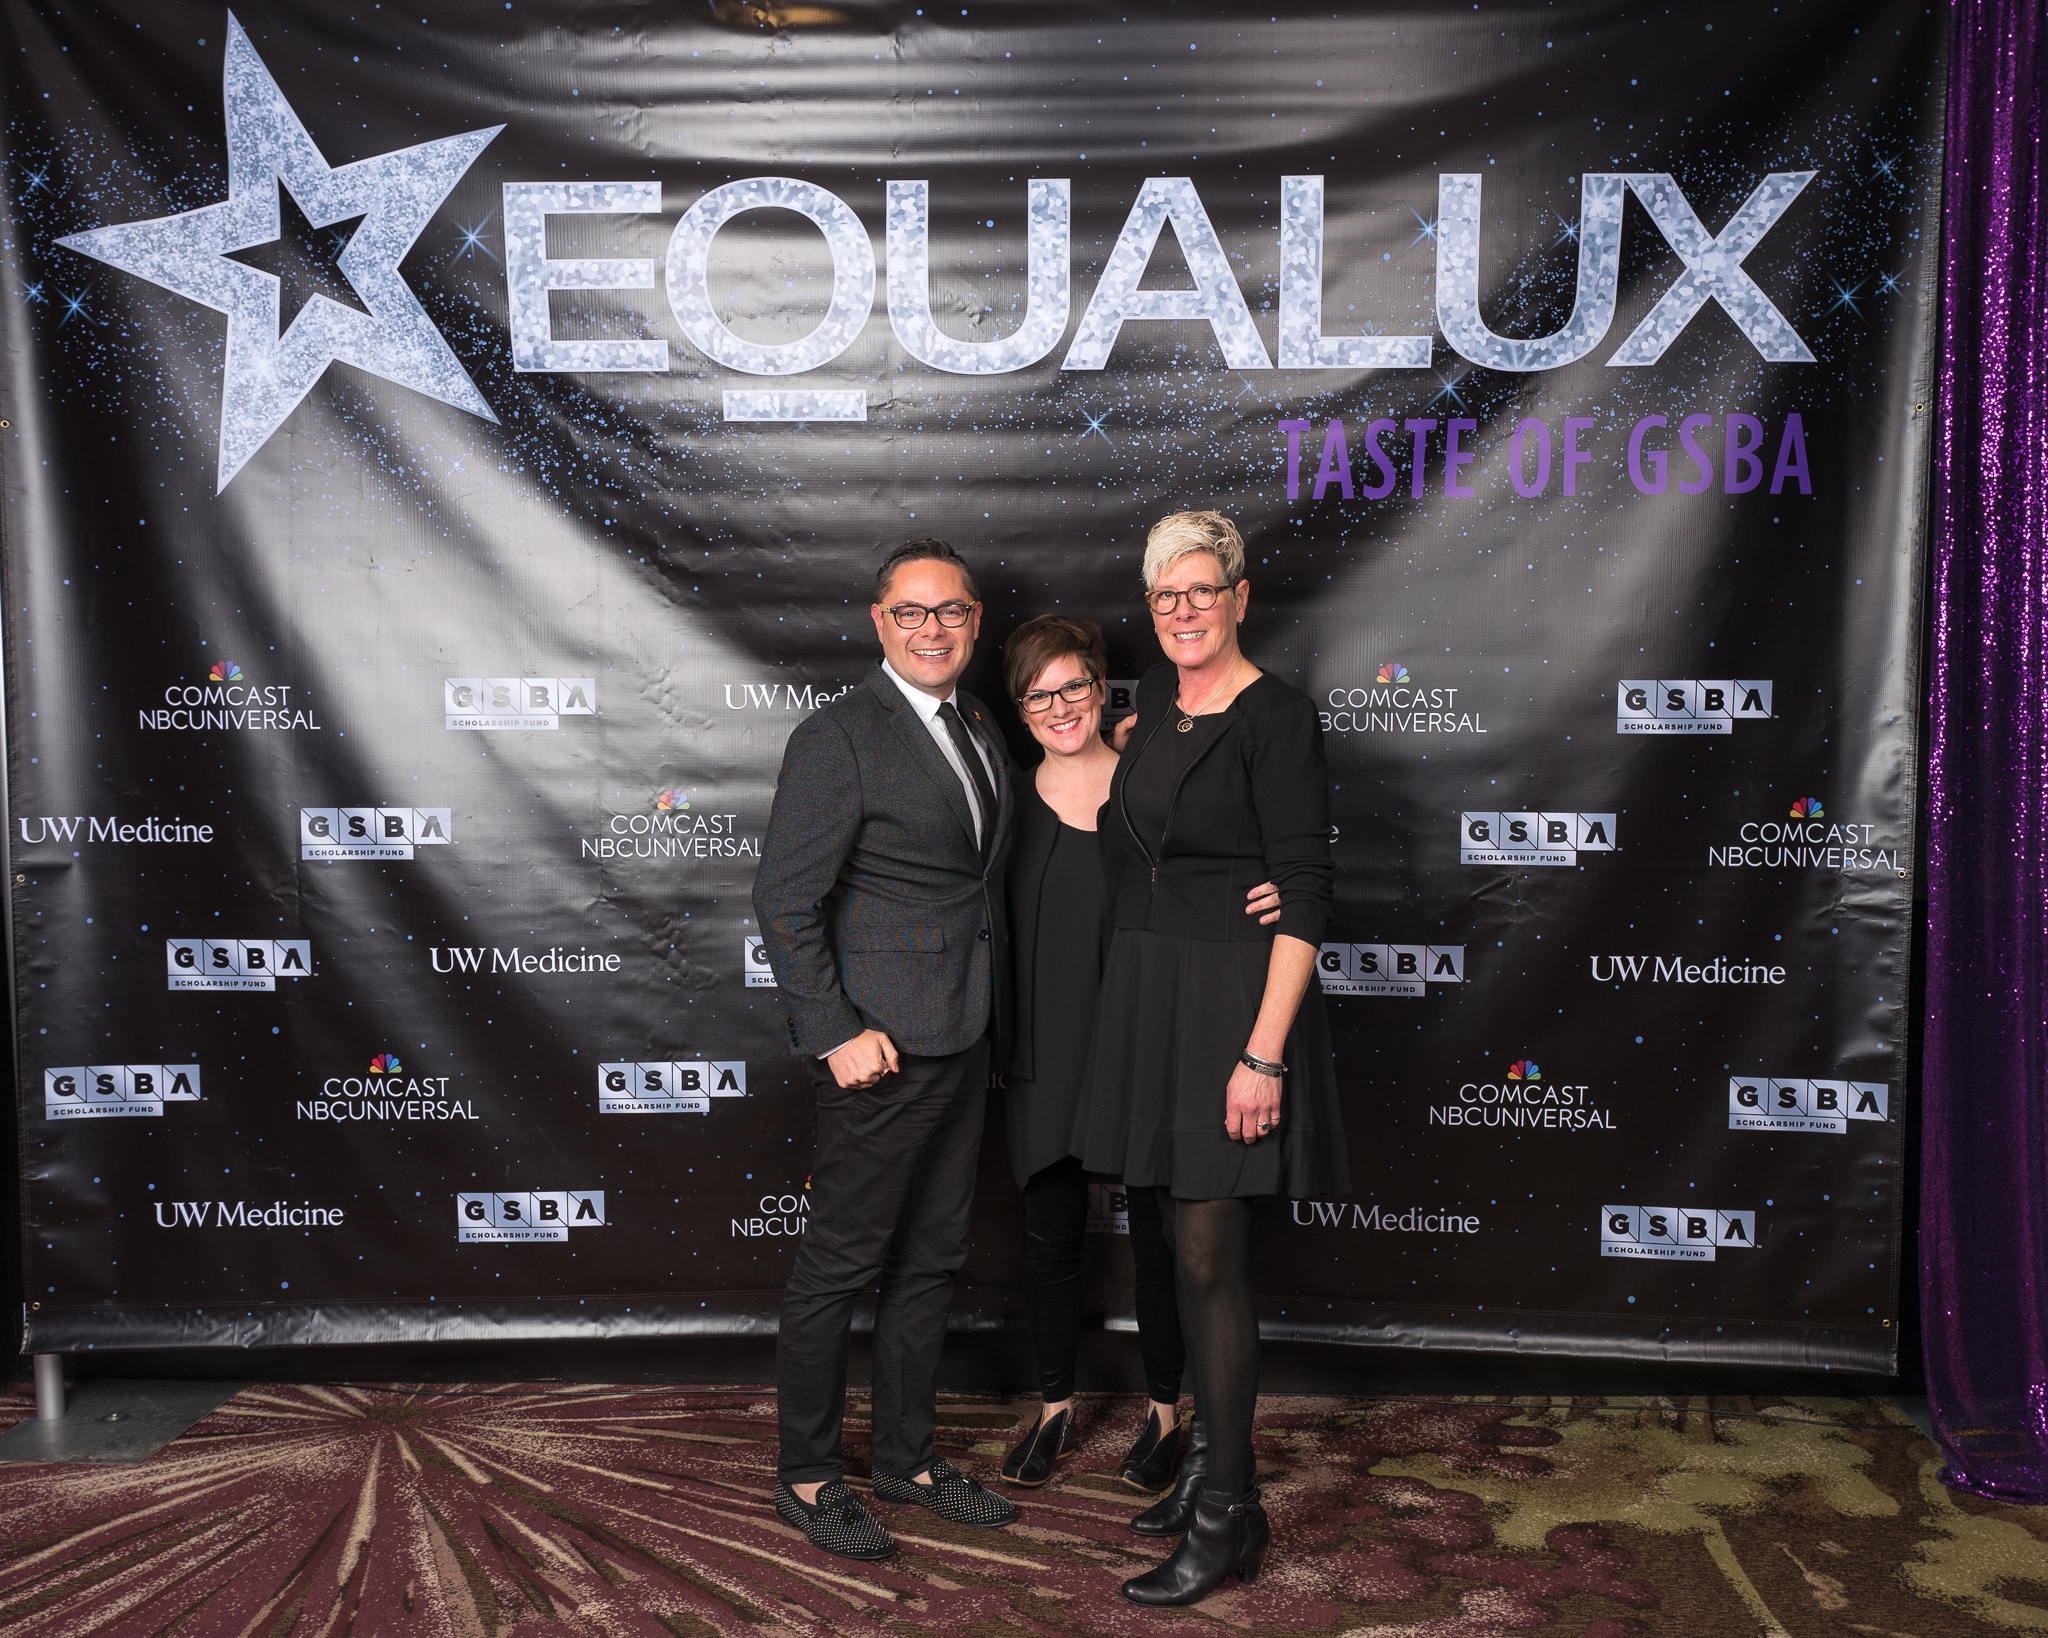 111718_GSBA EQUALUX at The Westin Seattle (Credit- Nate Gowdy)-64.jpg